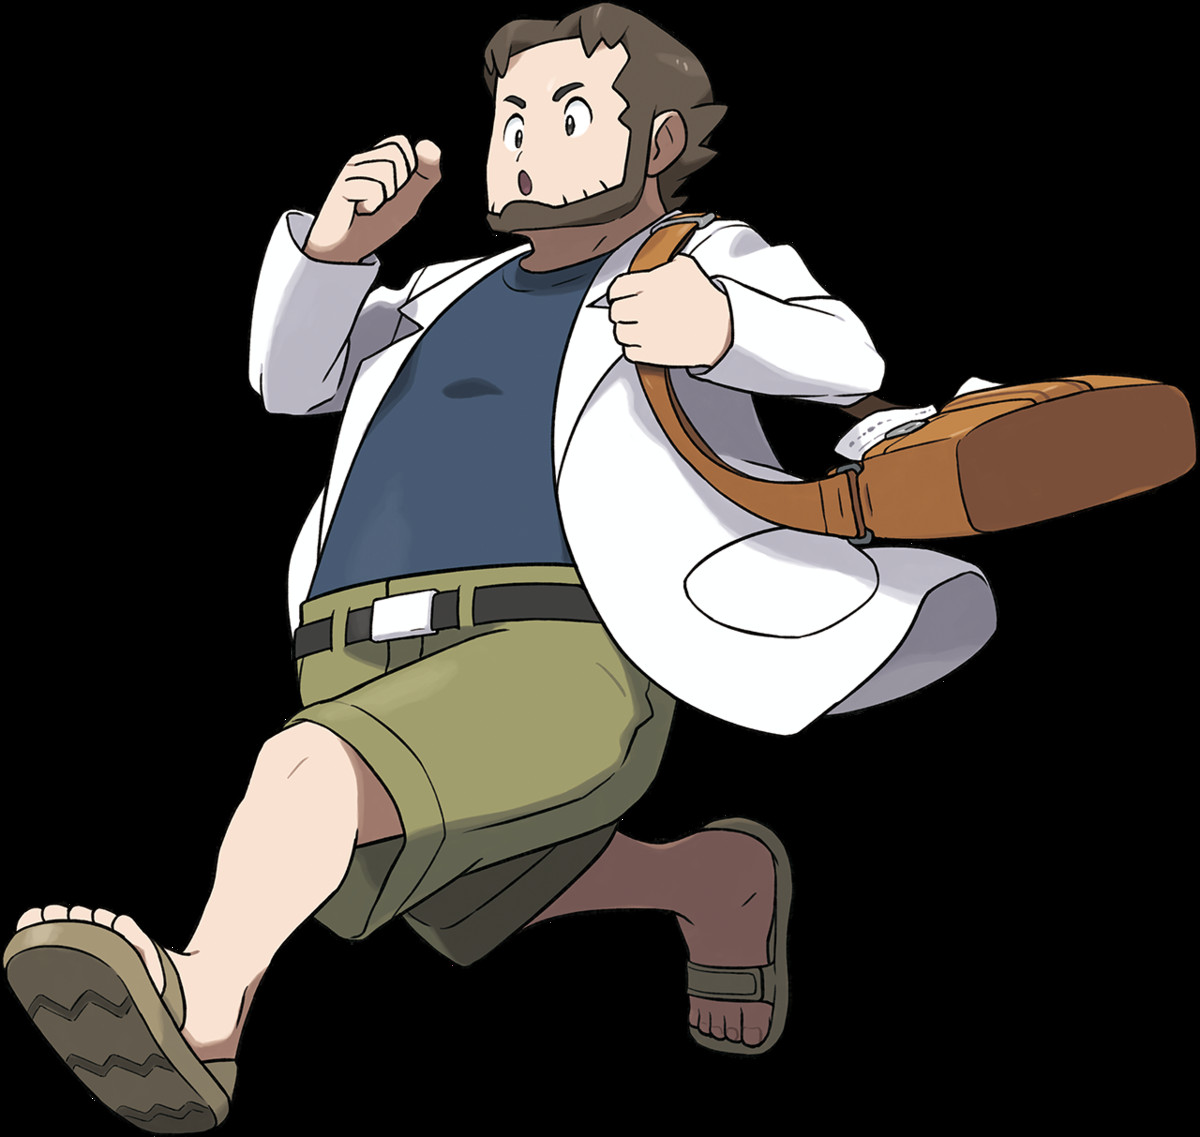 Ausmalbilder Pokemon Plinfa Frisch Professor Birch Bulbapedia the Munity Driven Pokémon Bild